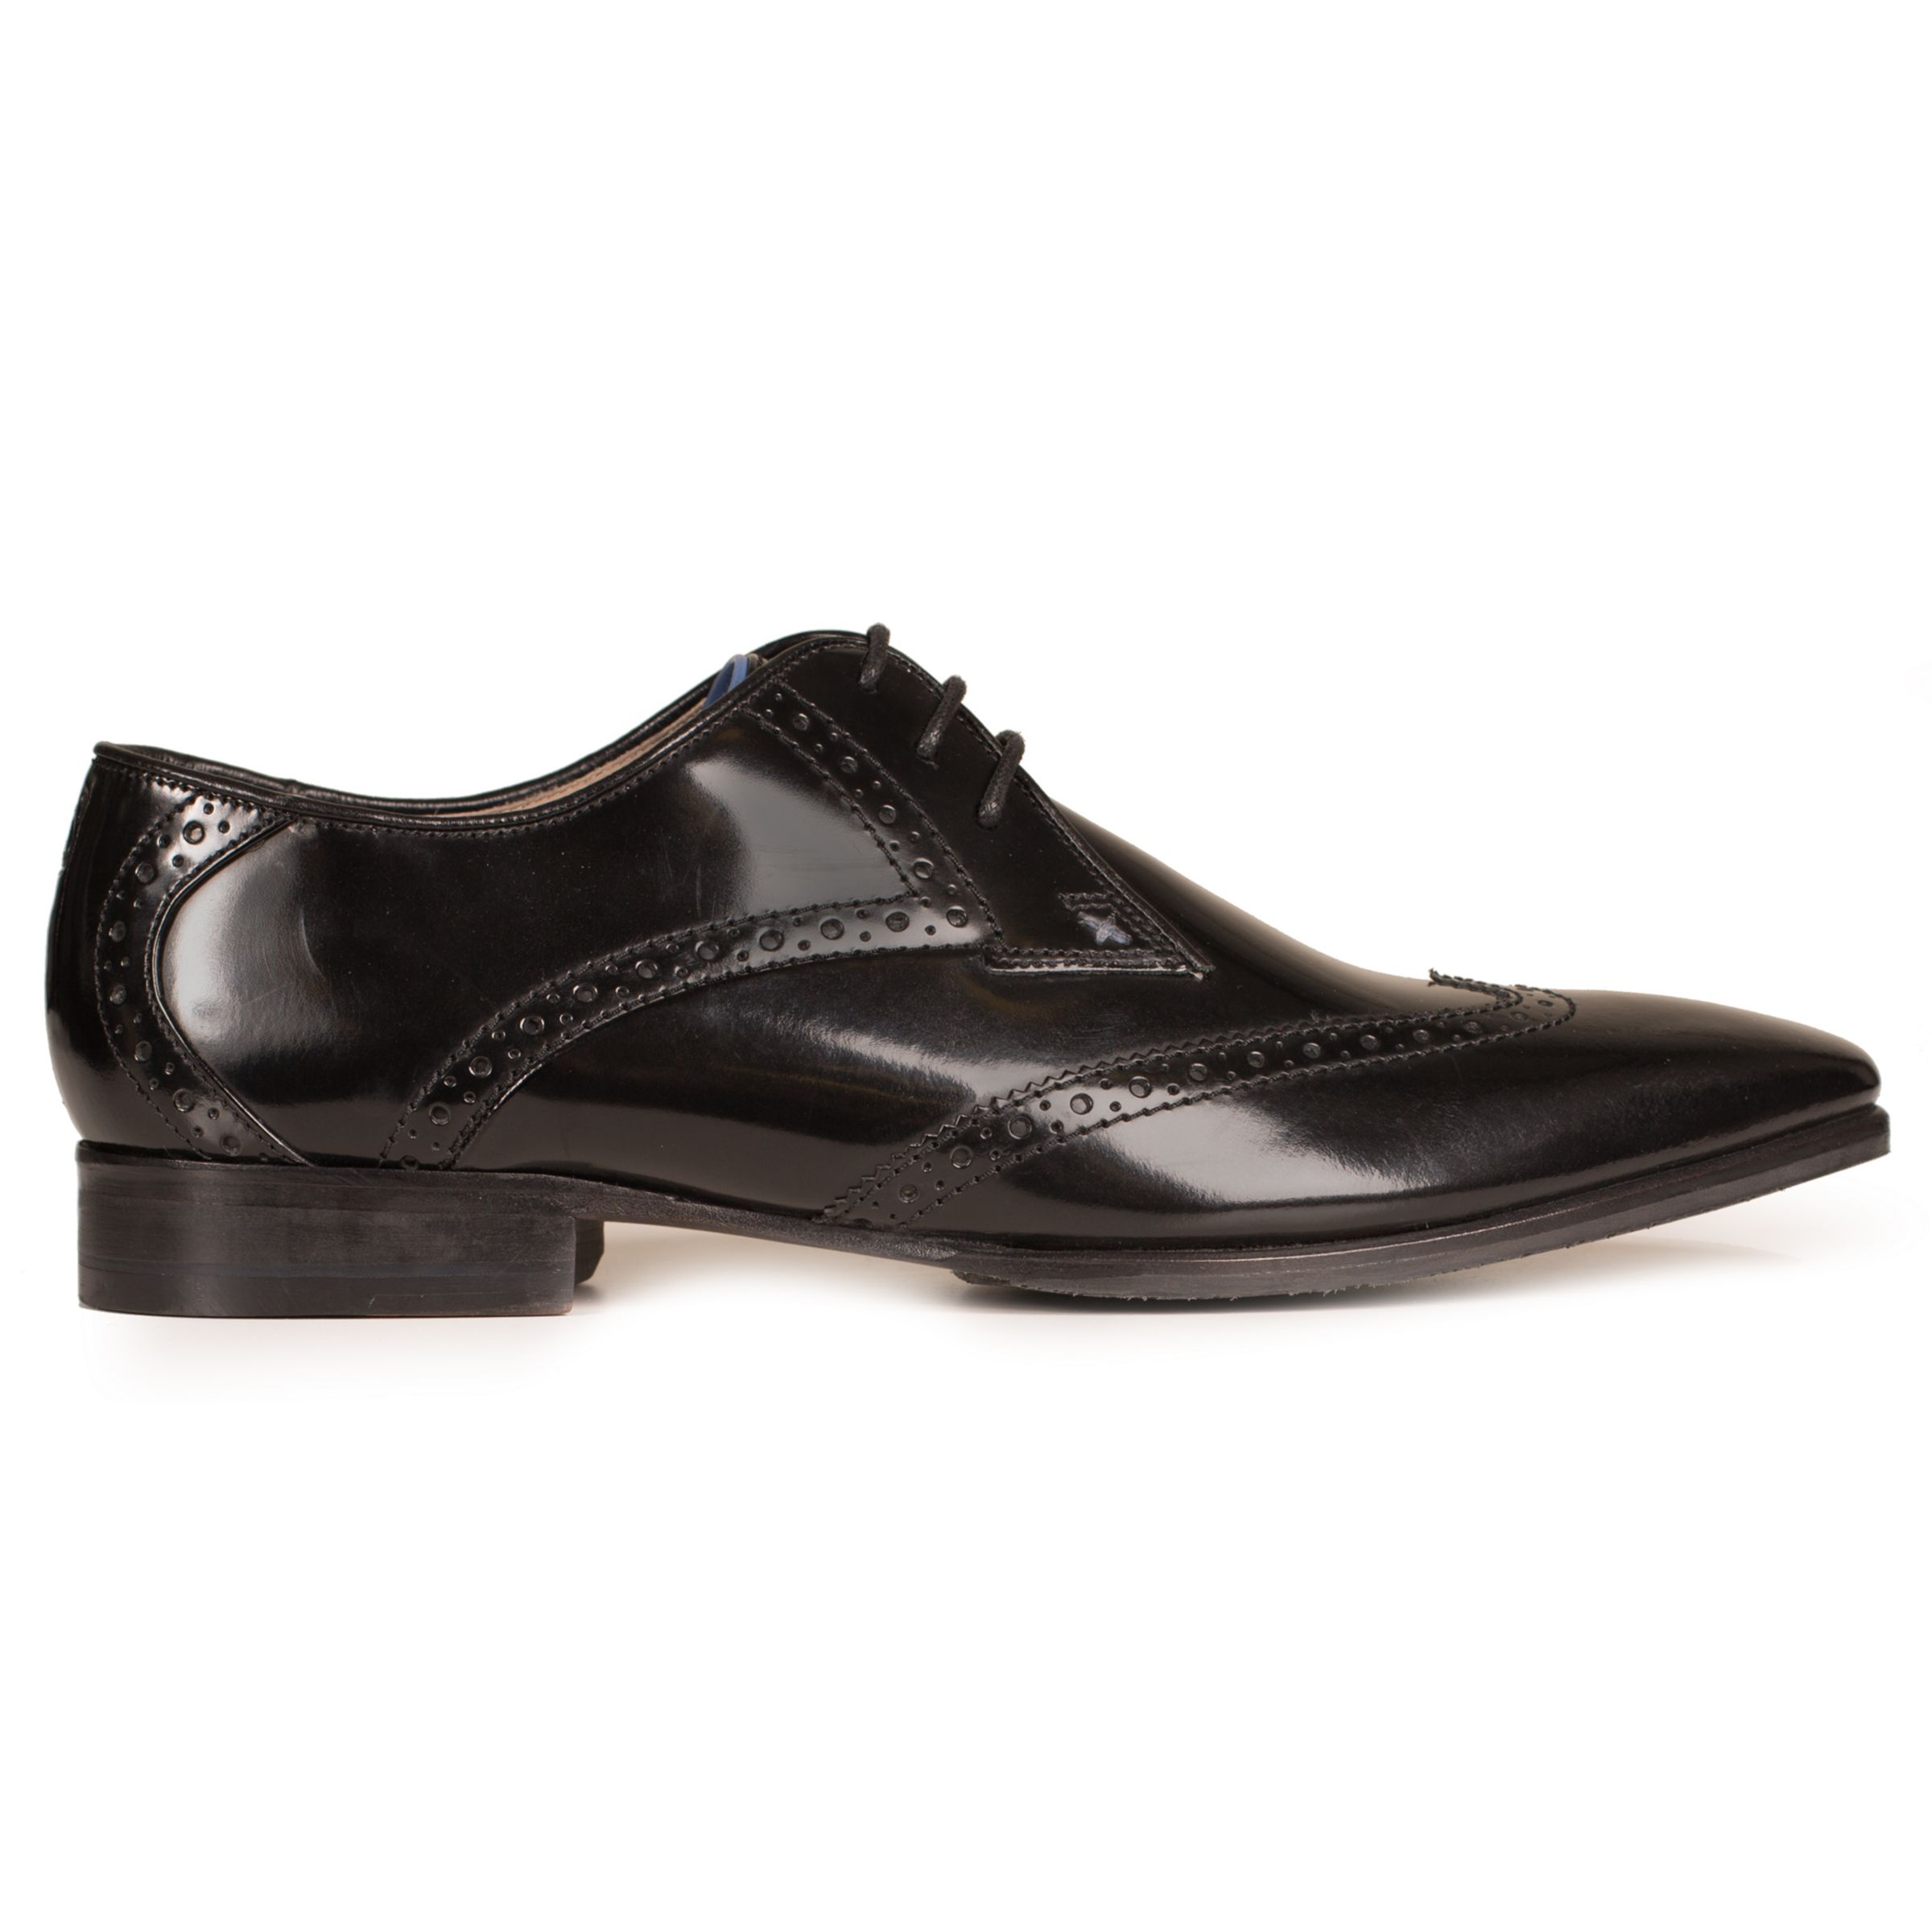 Oliver Sweeney Oliver Sweeney Buxhall Brogue Derby Shoes, Black